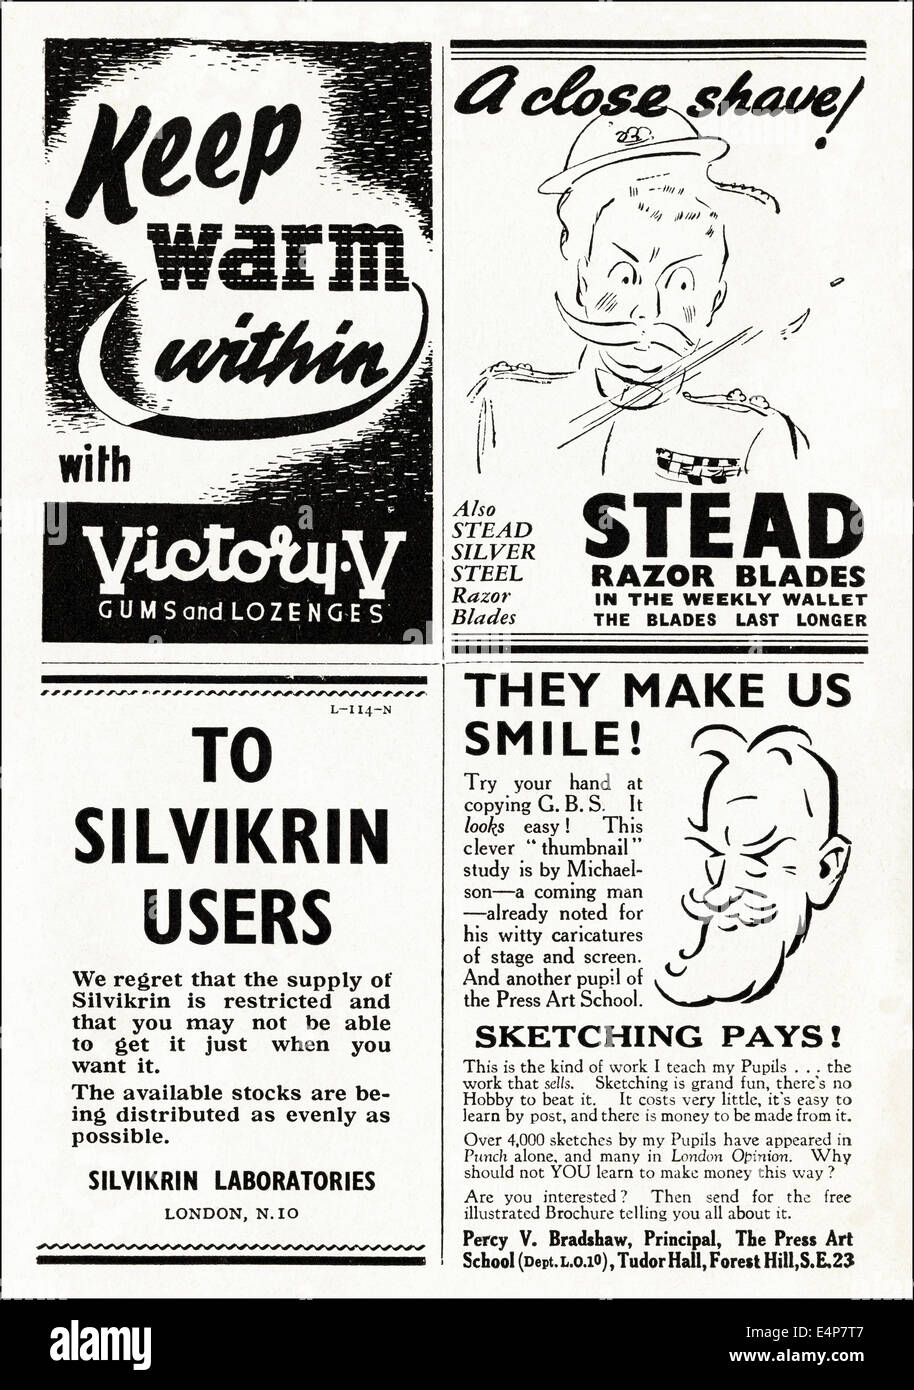 1940s adverts typical of the period in British magazine dated March 1942 - Stock Image